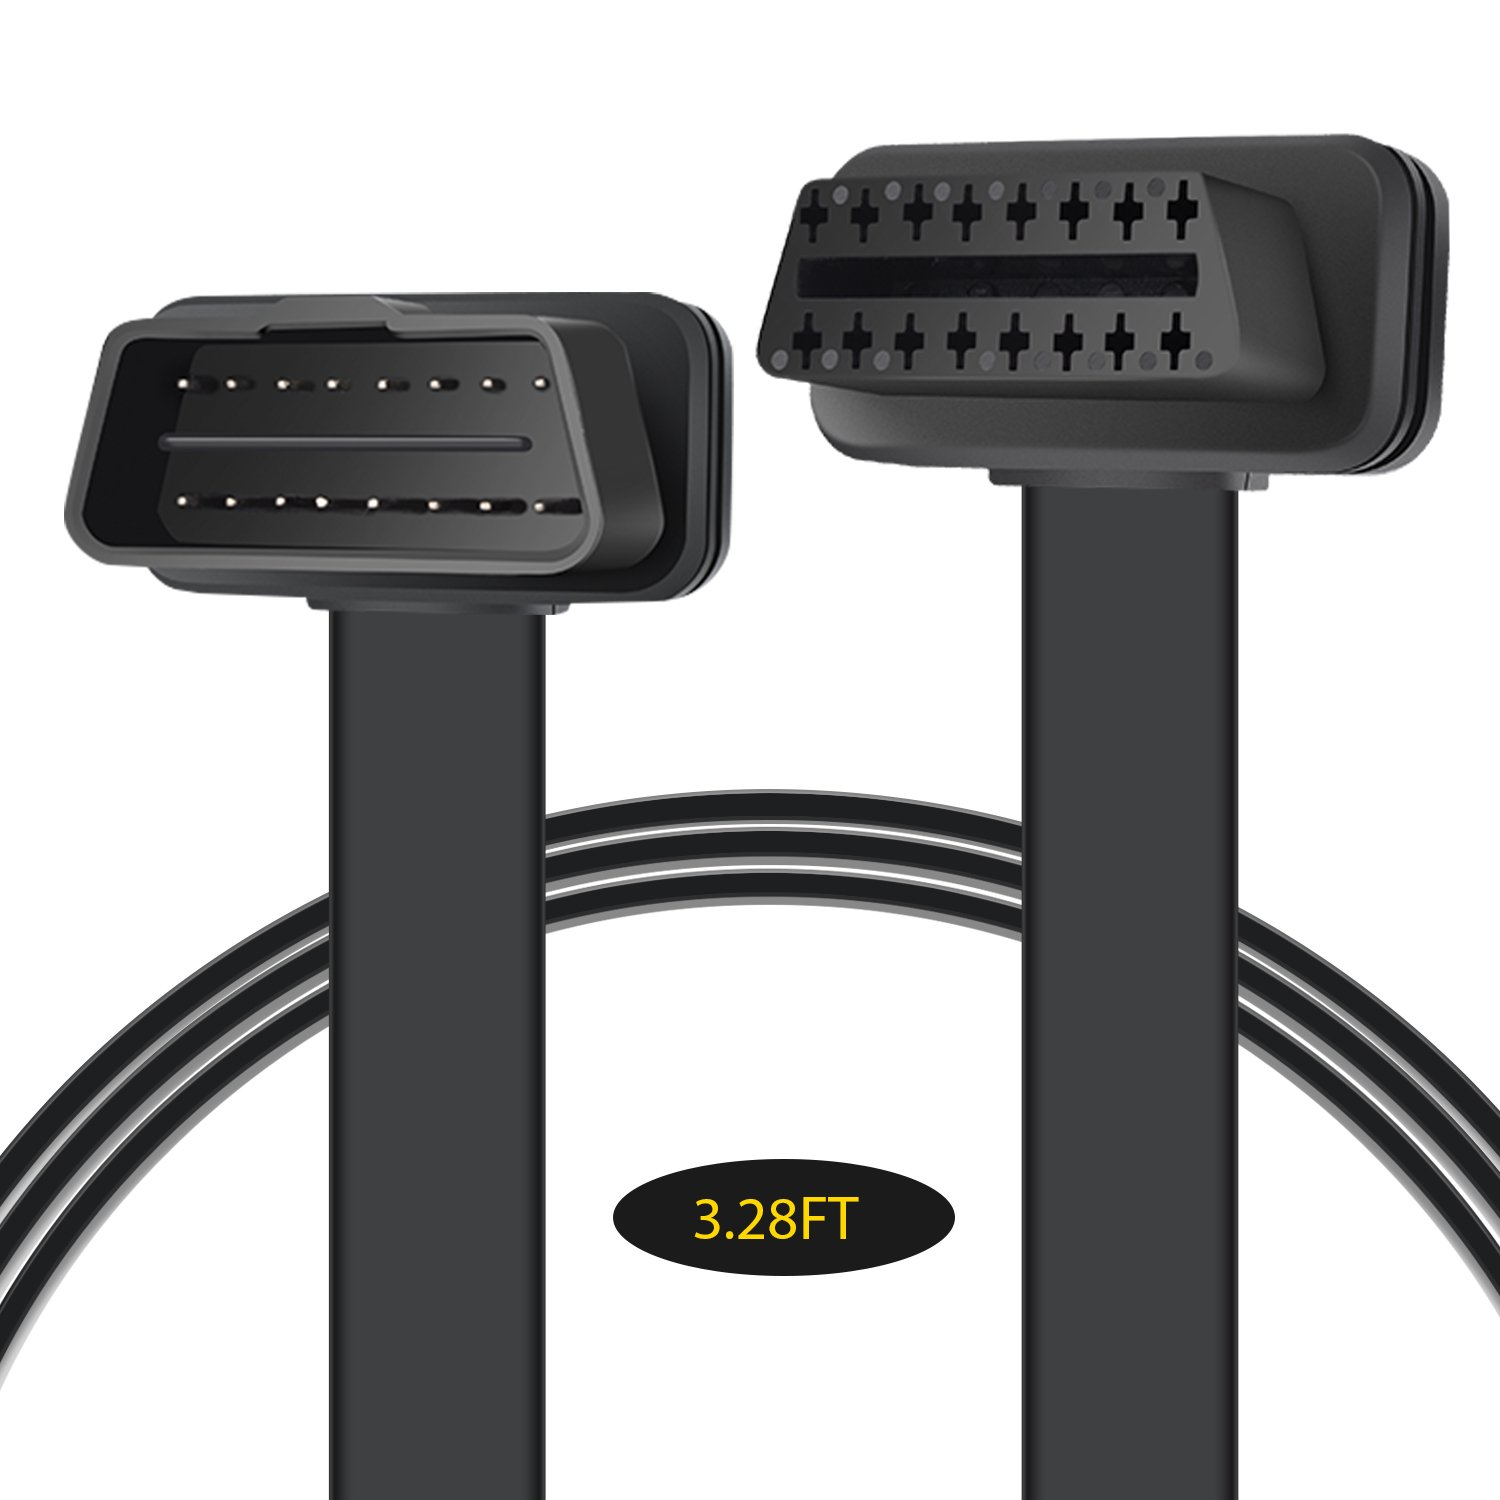 AIOBD OBD2 Scanner Extension Convert Cable, Black Male to Female Flat Extension Cable 16-pin Pass-Through All OBD Vehicles